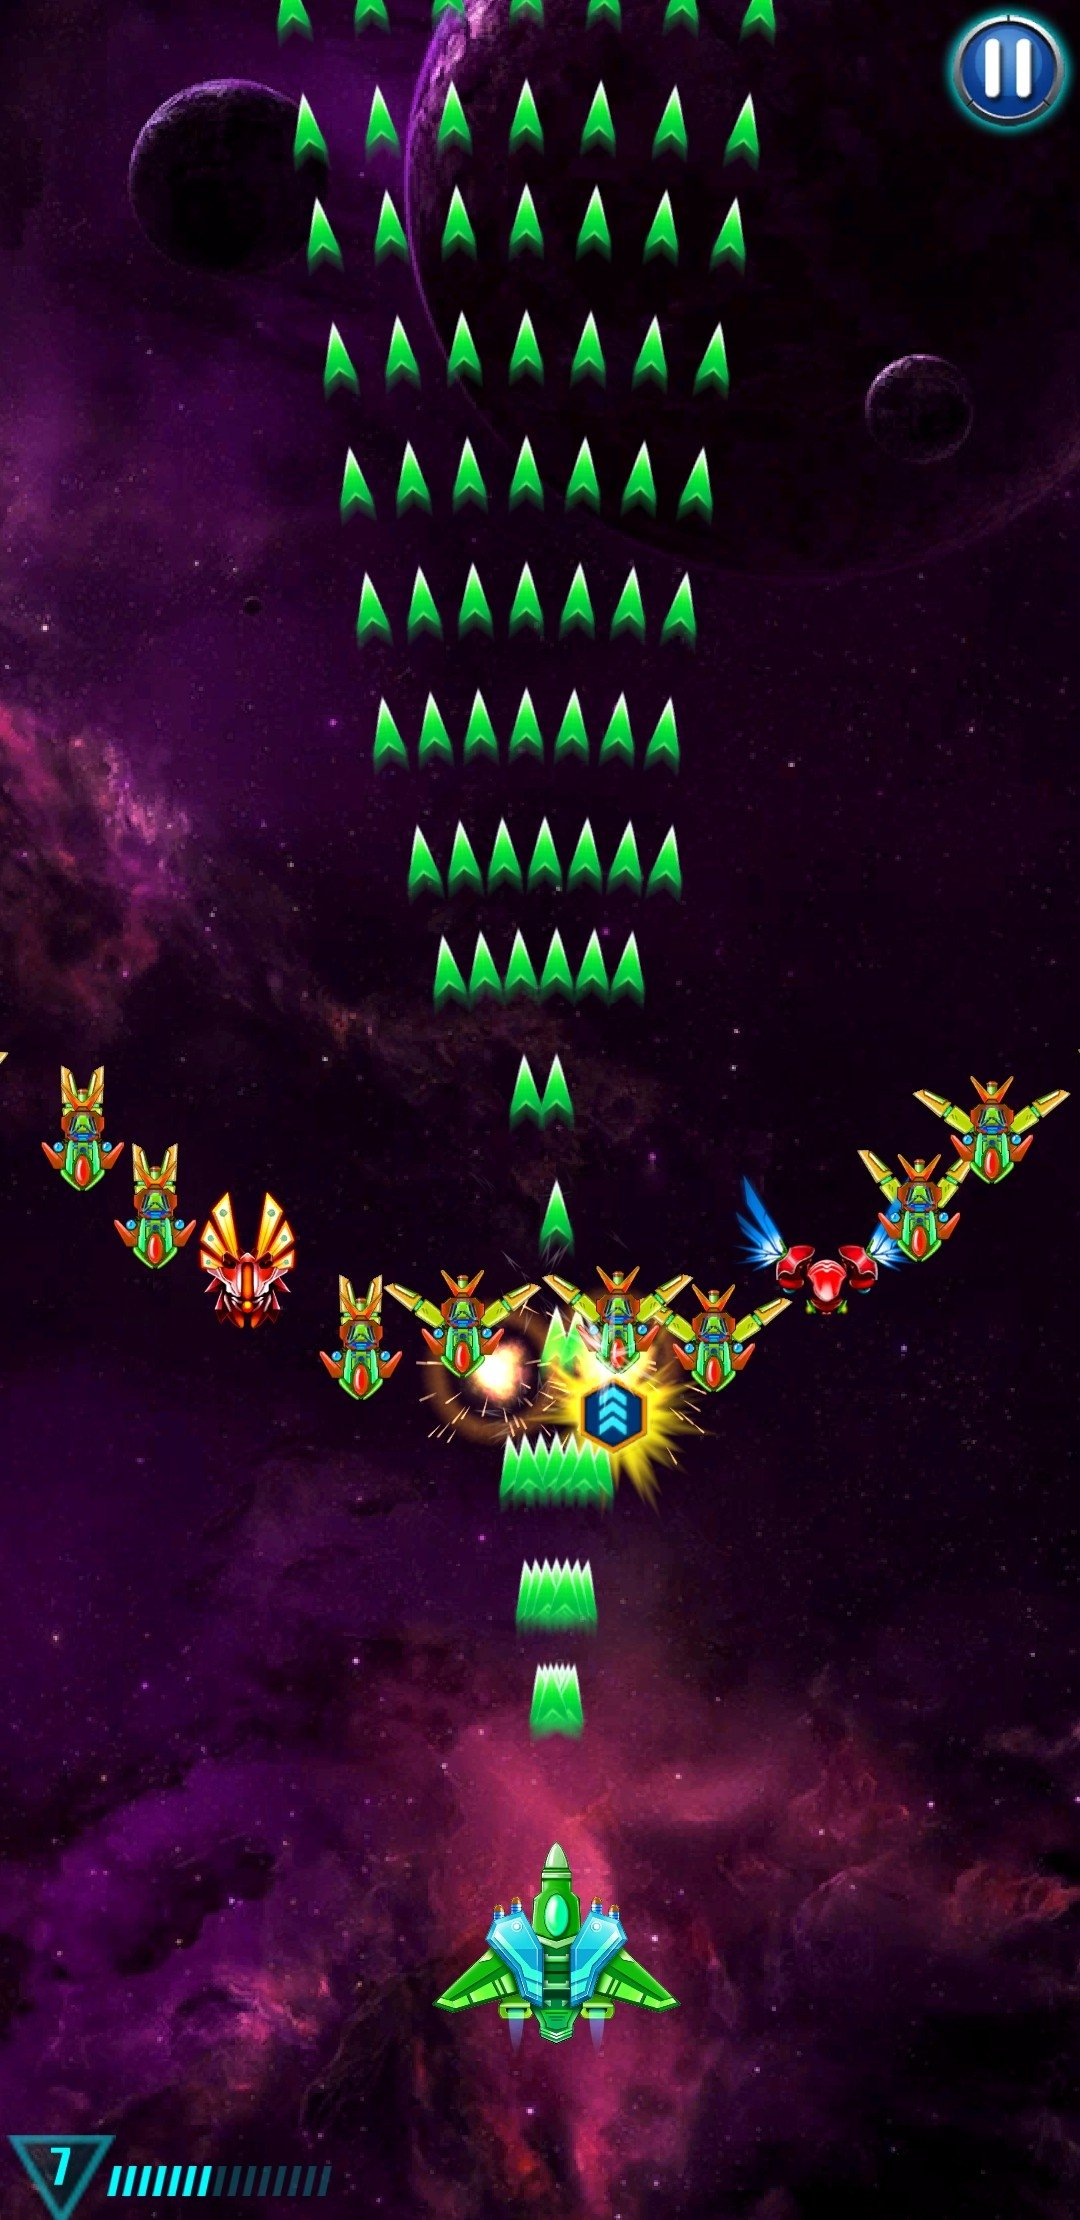 Galaxy Attack: Alien Shooter 8 05 - Download for Android APK Free